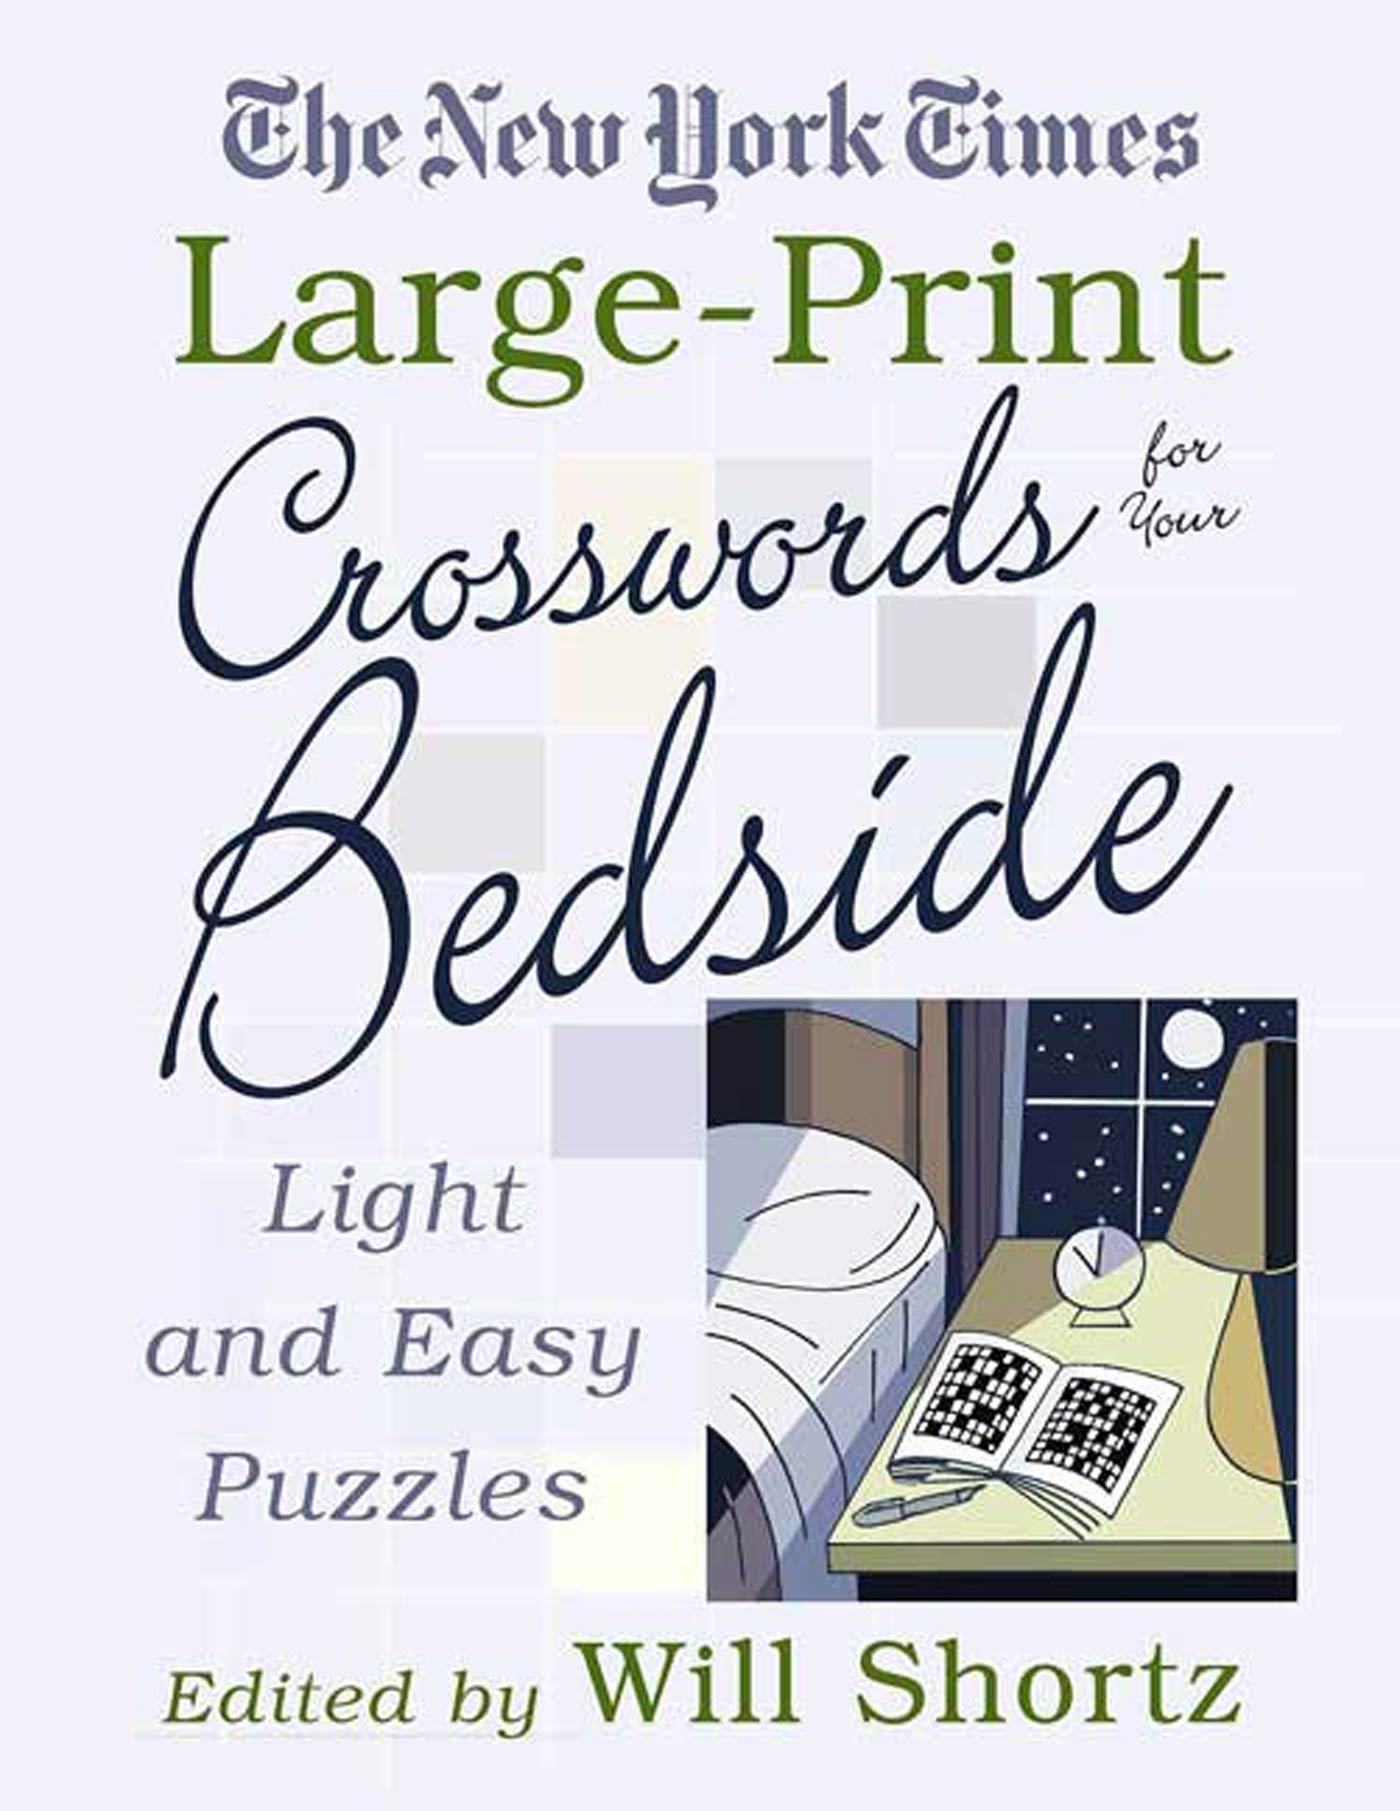 photo relating to Easy Printable Crosswords named The Clean York Instances Major-Print Crosswords for Your Bedside : Light-weight and Very simple Puzzles